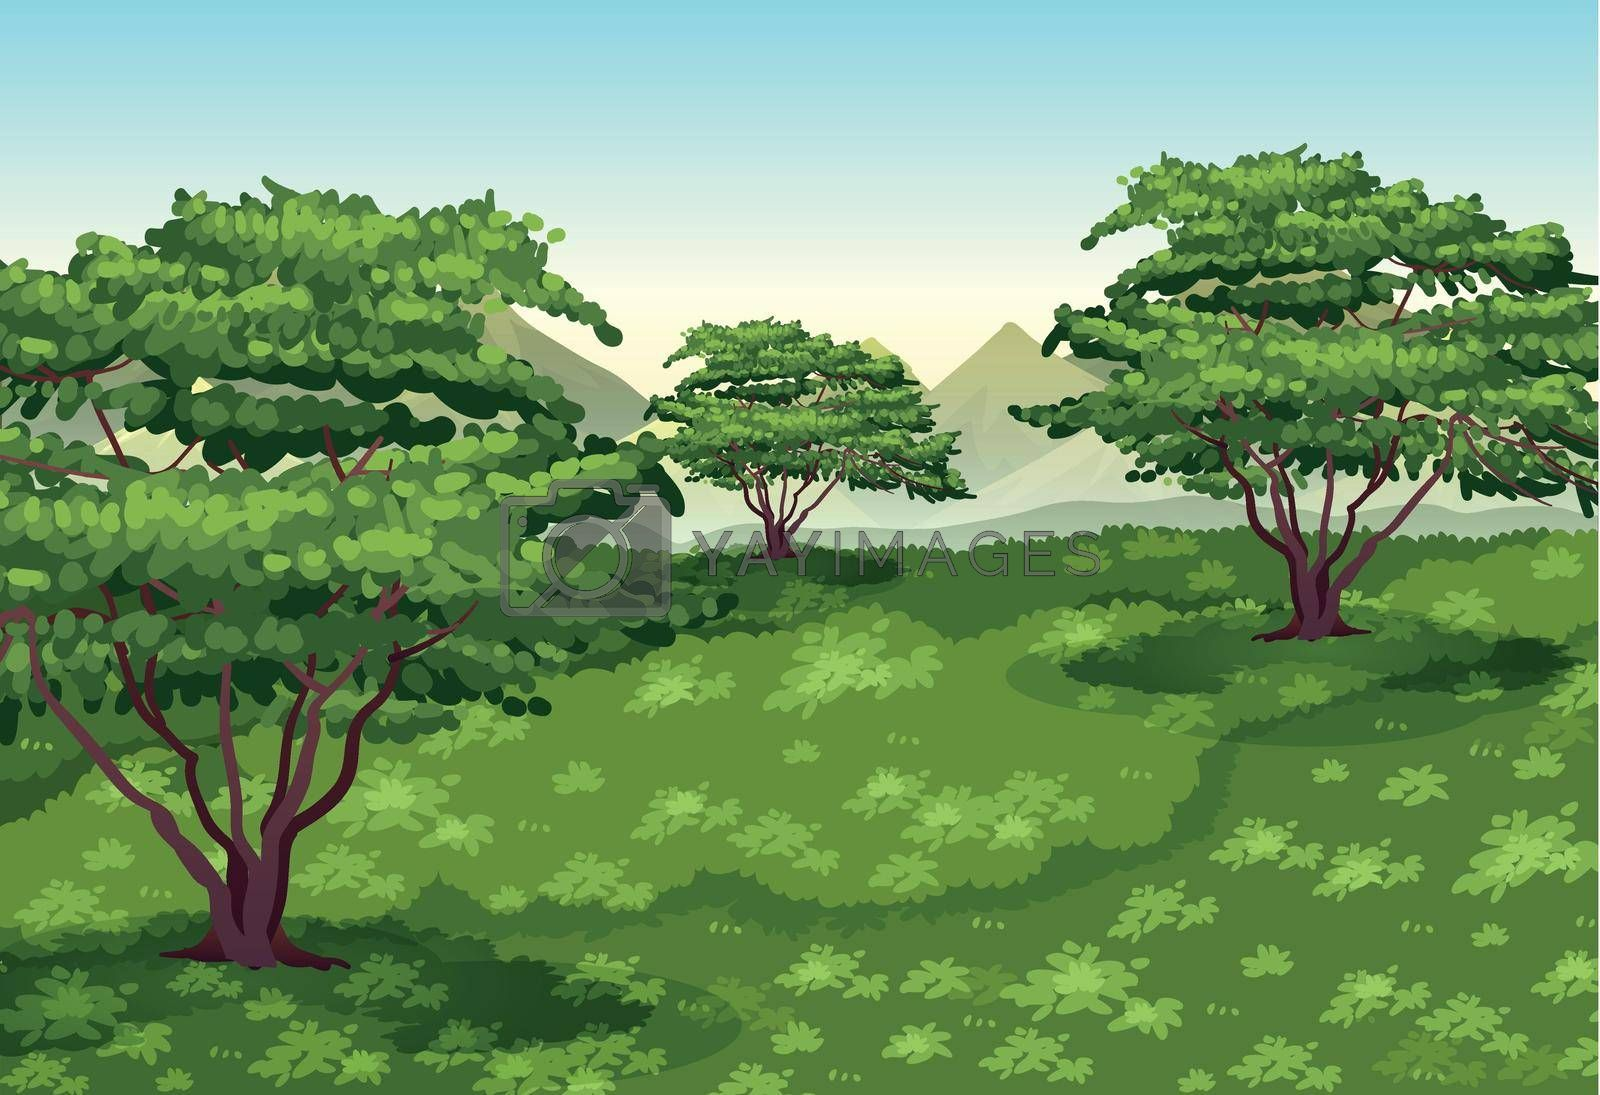 Background scene with trees and green field illustration